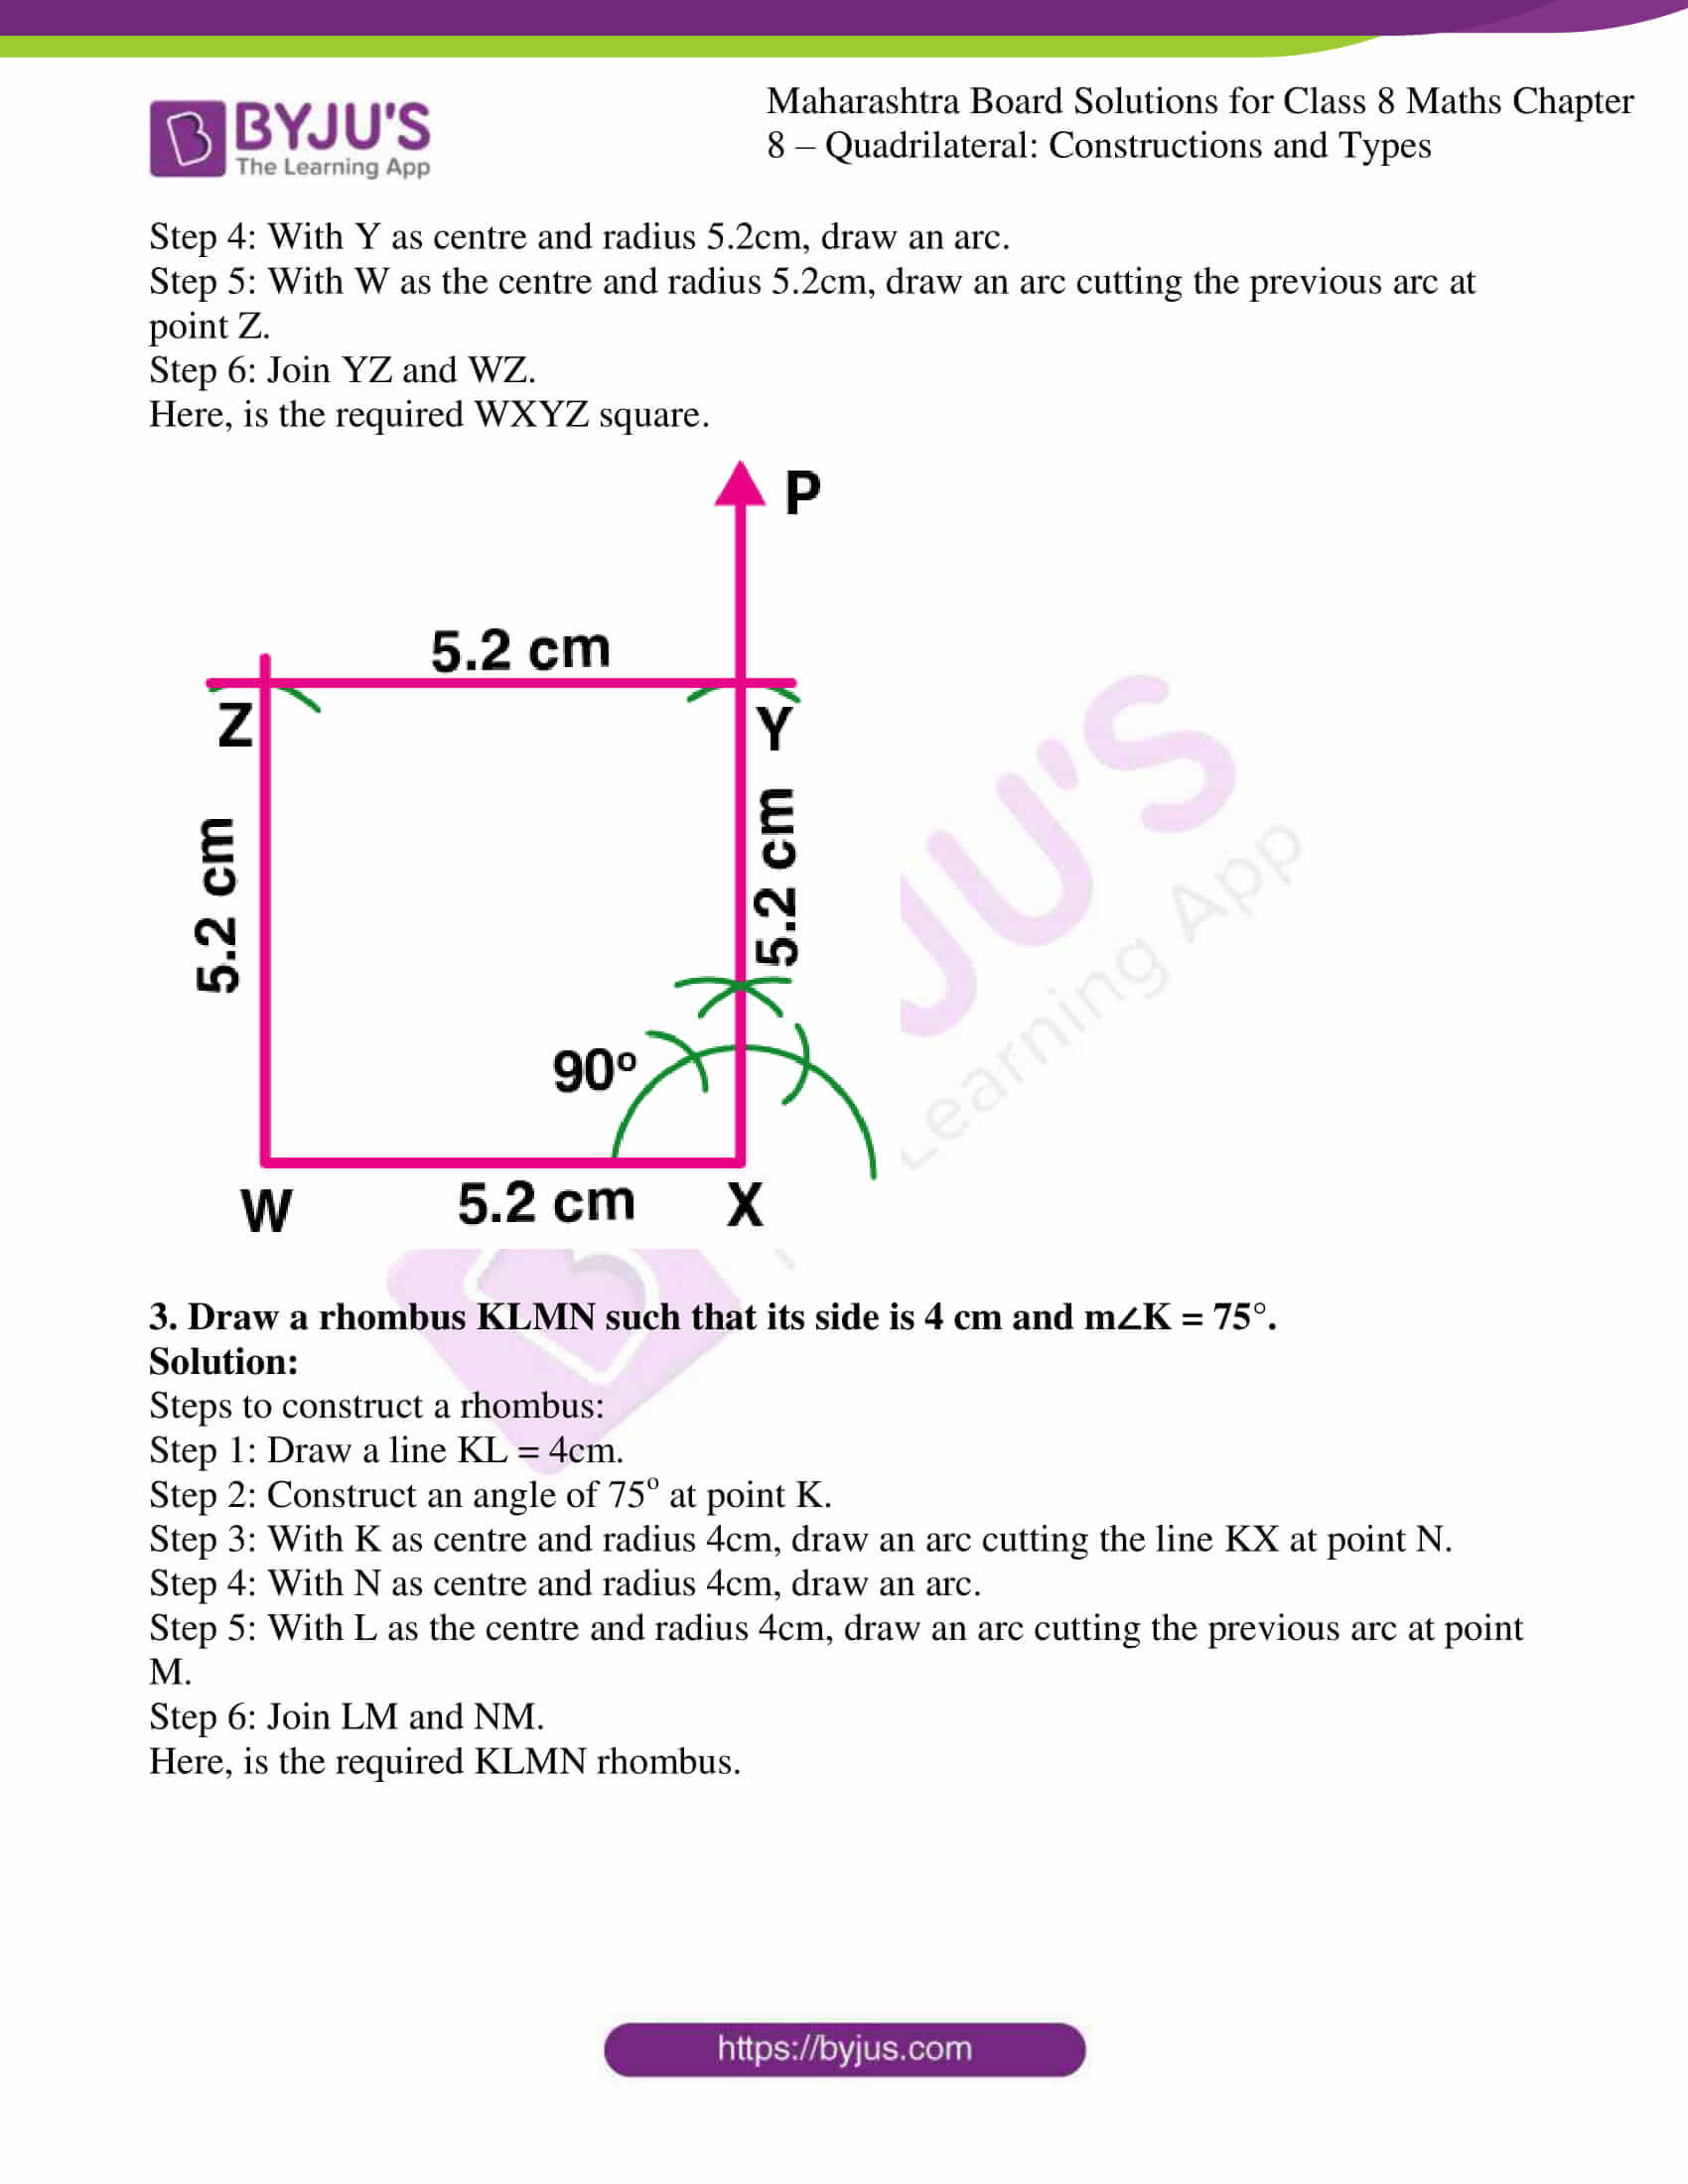 msbshse sol for class 8 maths chapter 8 07